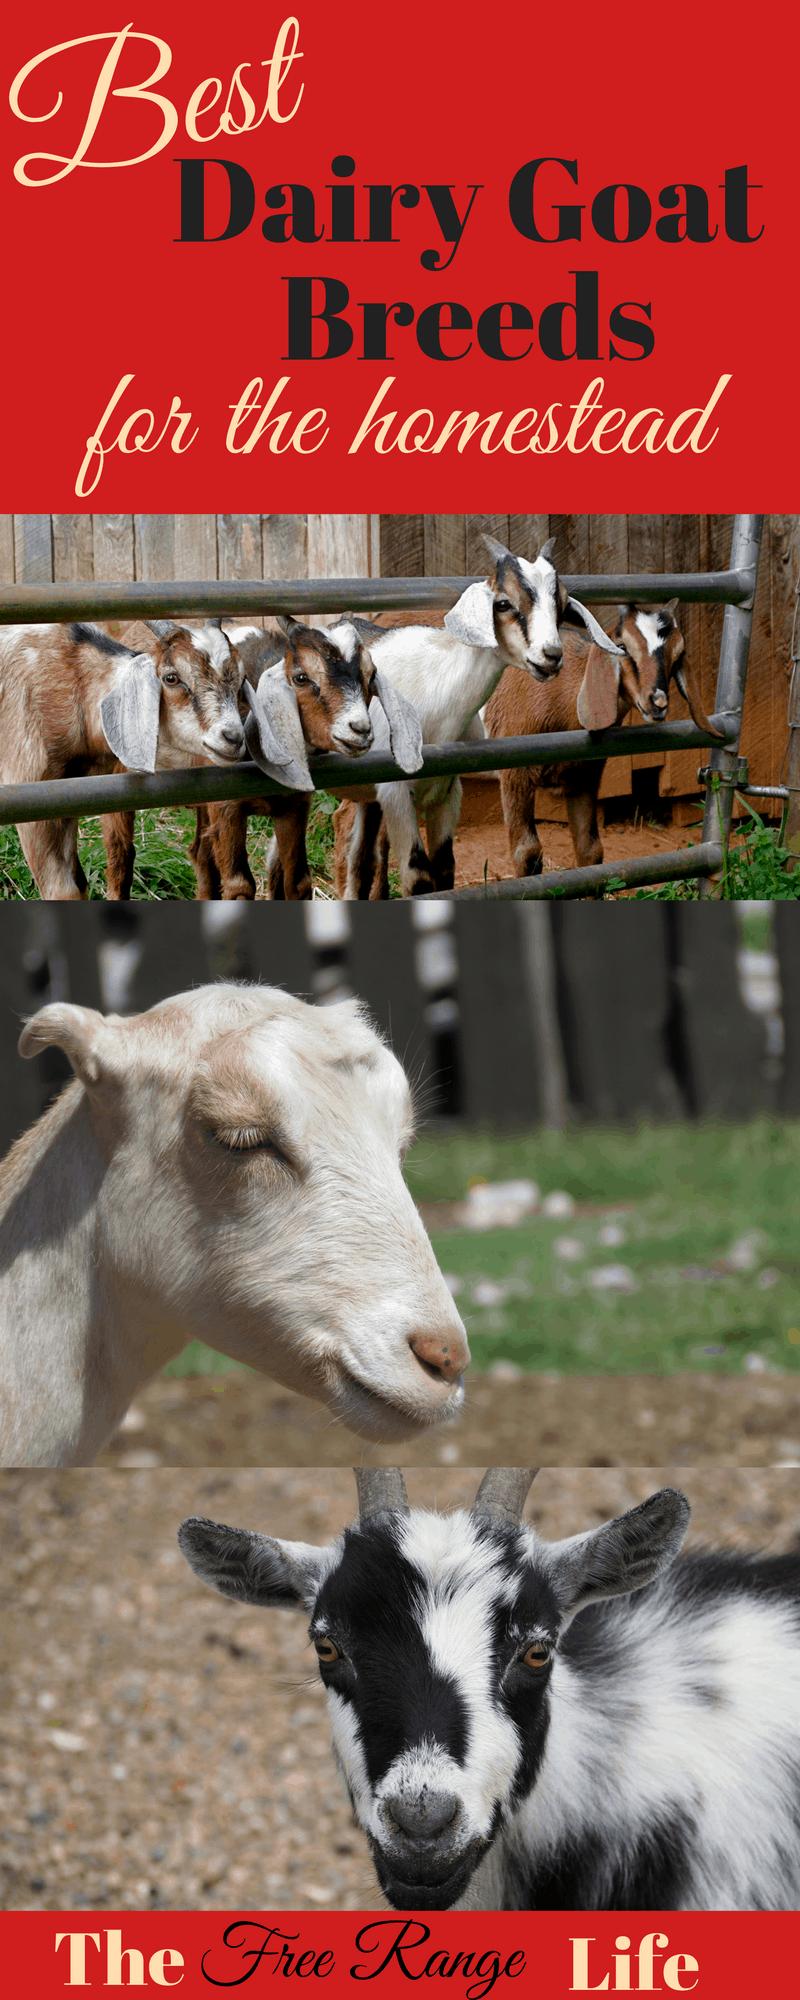 5-best-dairy-goats-for-your-homestead